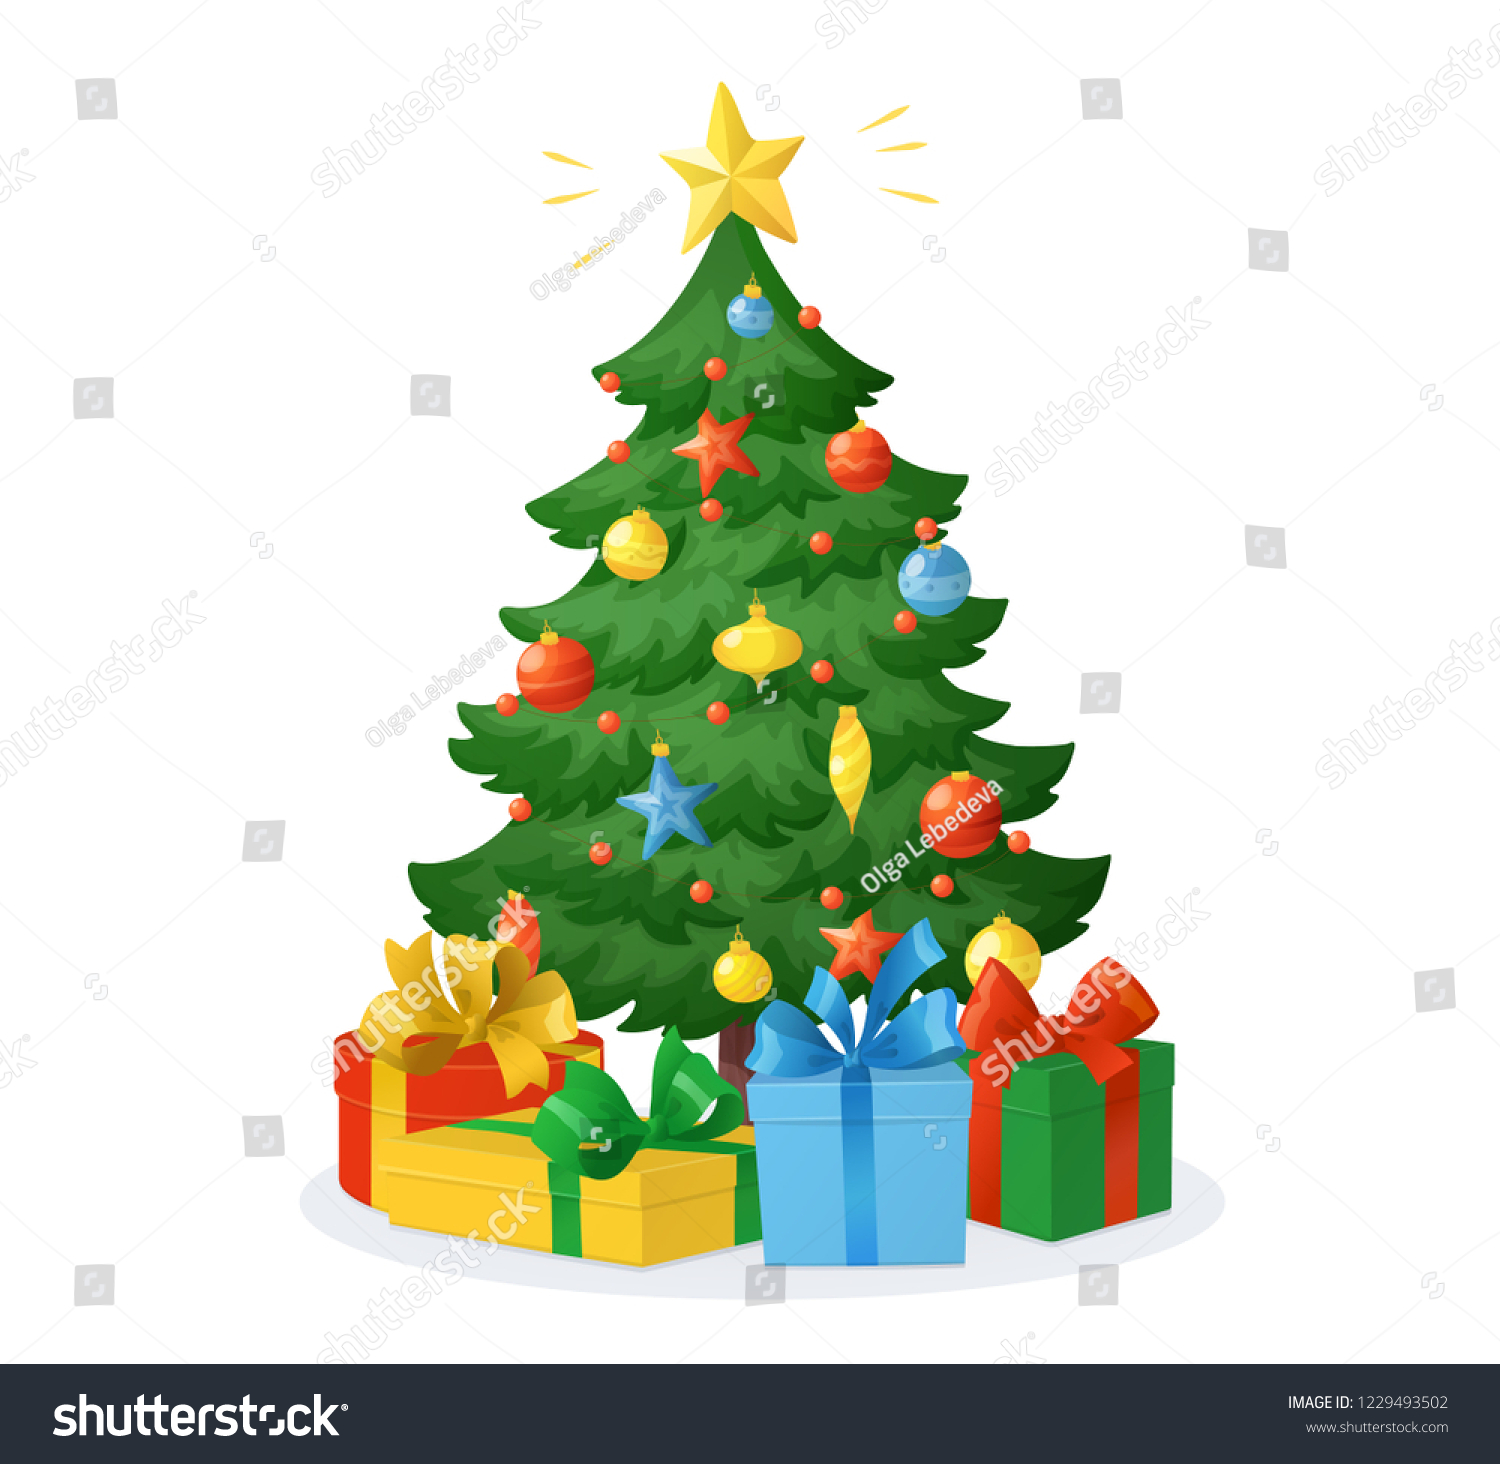 Cartoon Christmas Tree Presents Isolated On Stock Vector Royalty Free 1229493502 Watch online and download dora the explorer cartoon in high quality. shutterstock